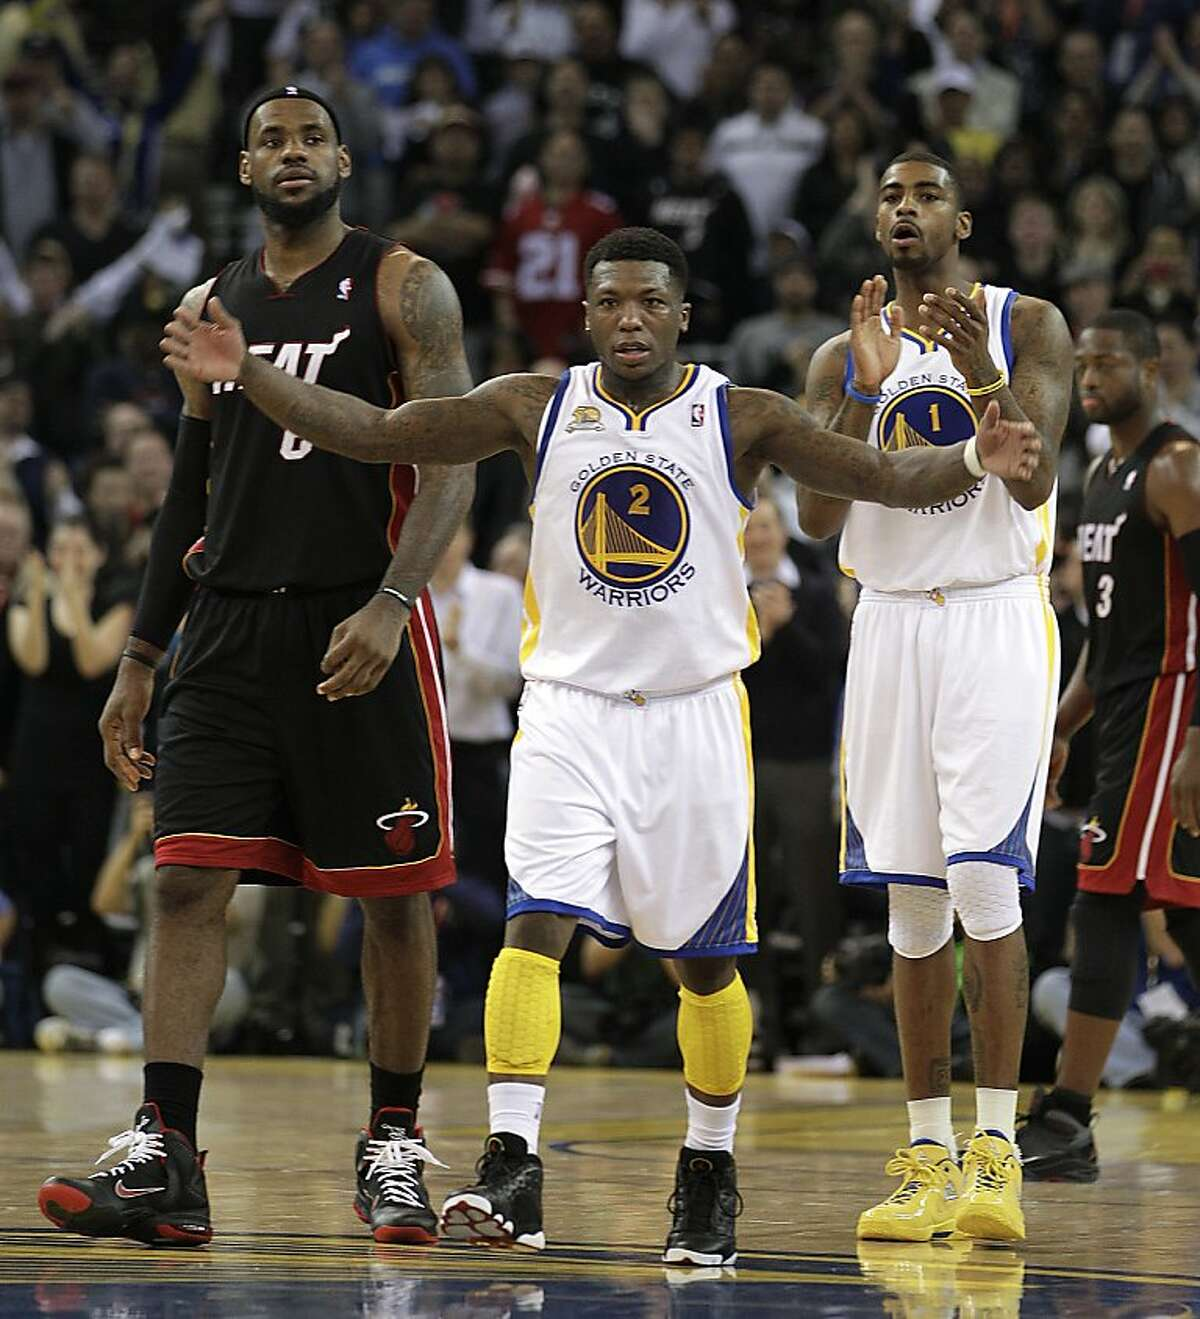 Golden State Warriors' Nate Robinson (2) and Dorell Wright (1) celebrate as Miami Heat's LeBron James, left, and Dwyane Wade (3) look on during the fourth period of an NBA basketball game Tuesday, Jan. 10, 2012, in Oakland, Calif. (AP Photo/Ben Margot)